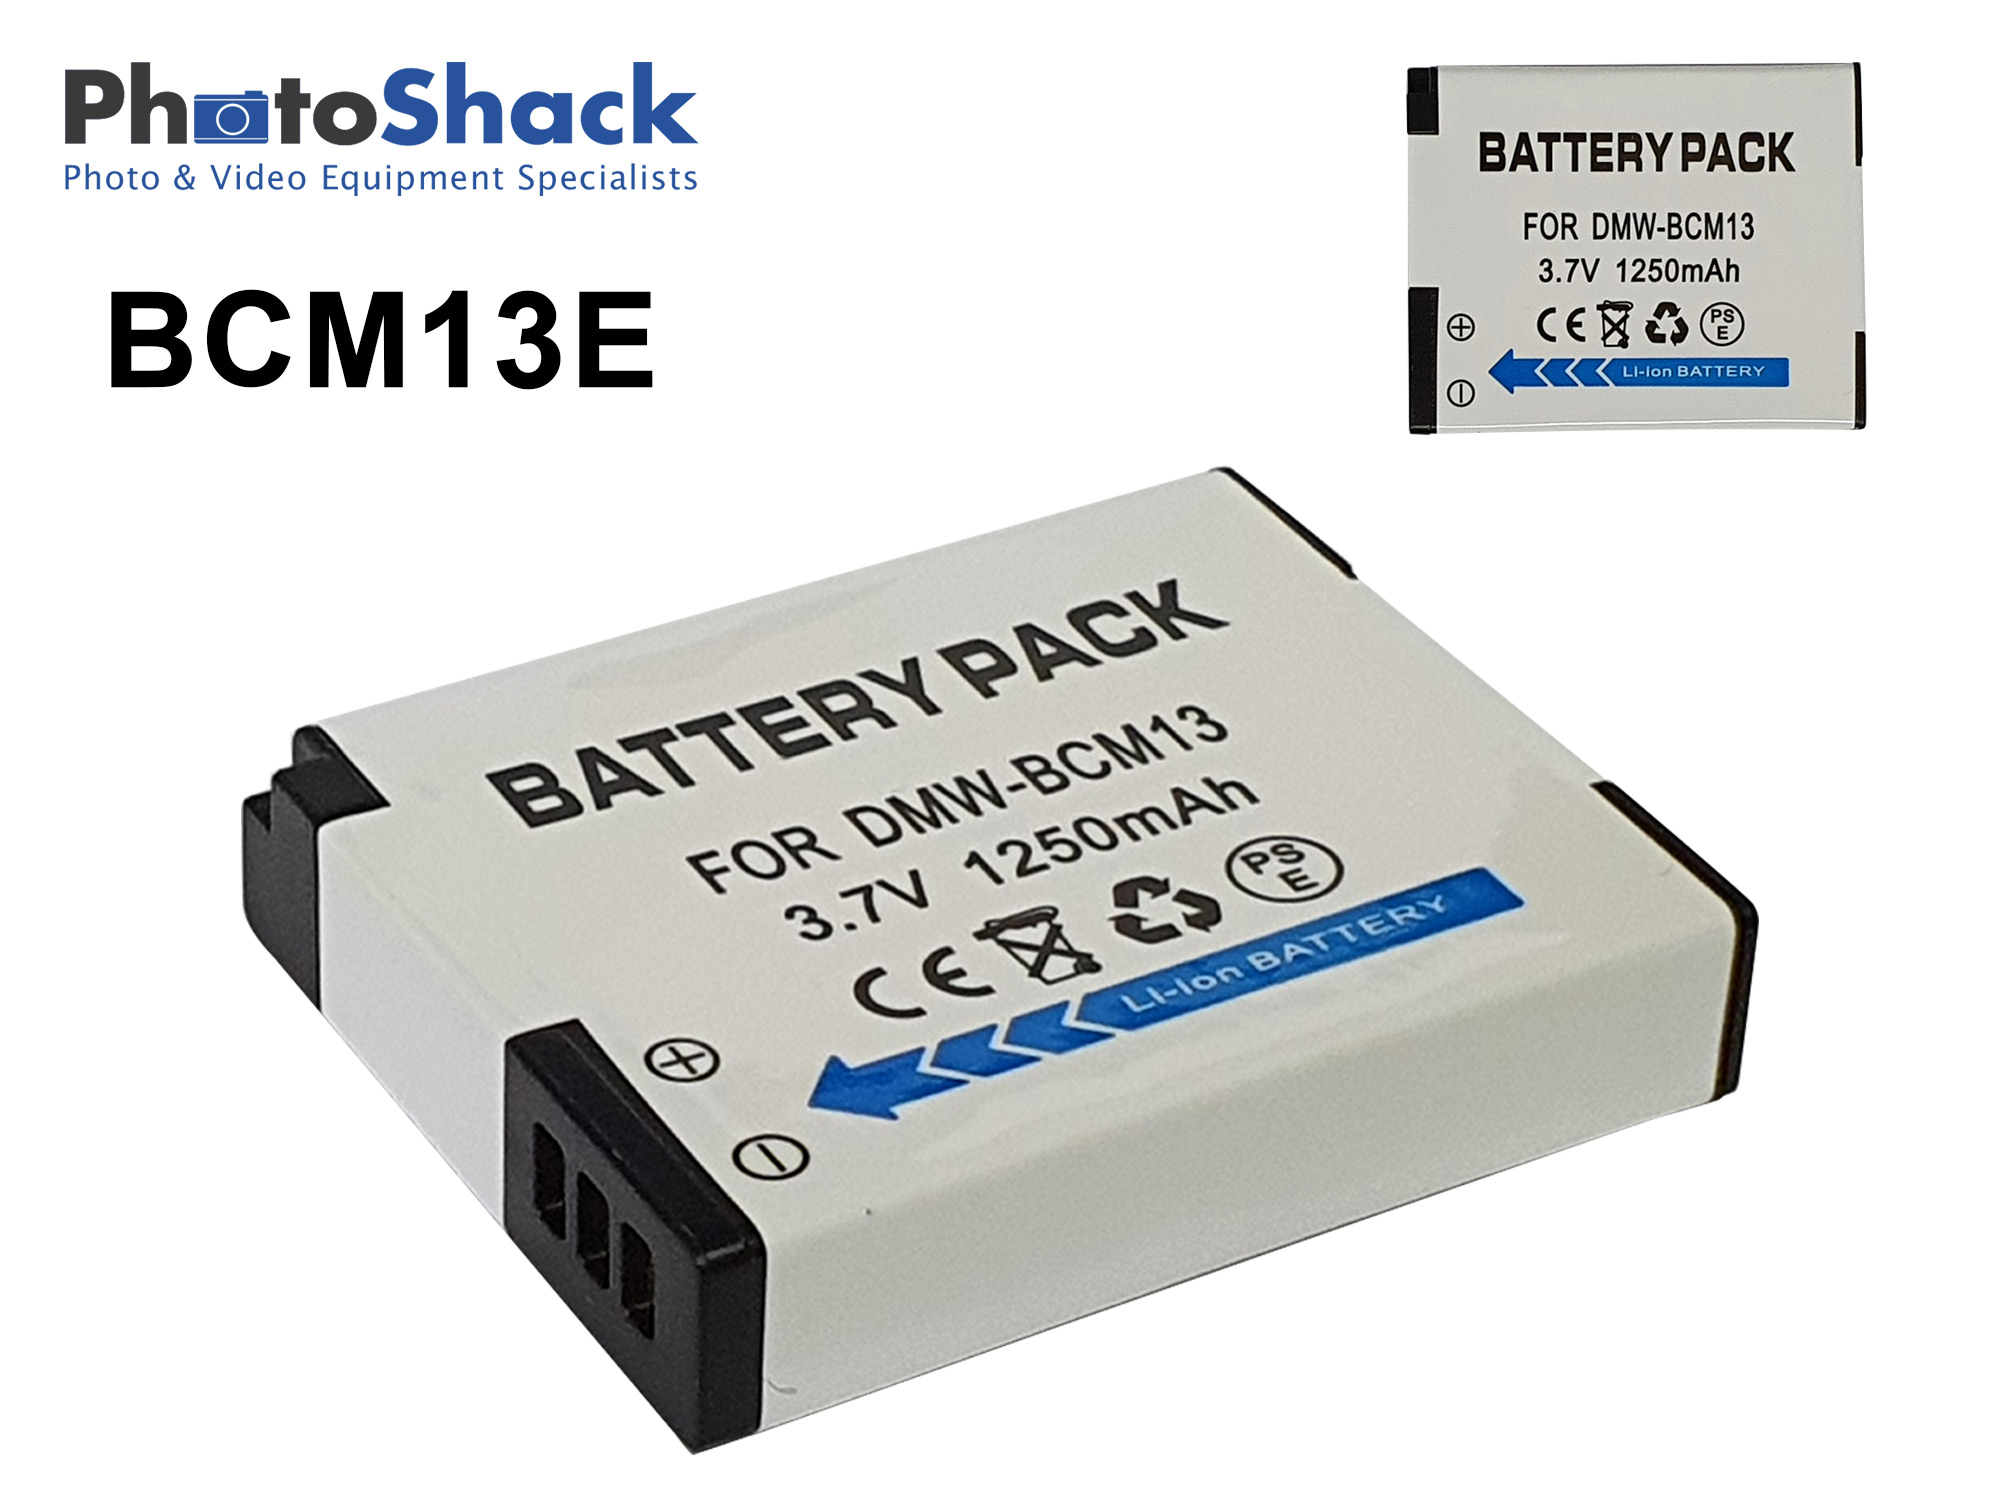 DMW-BCM13 Battery for Panasonic Cameras - 1250mAh